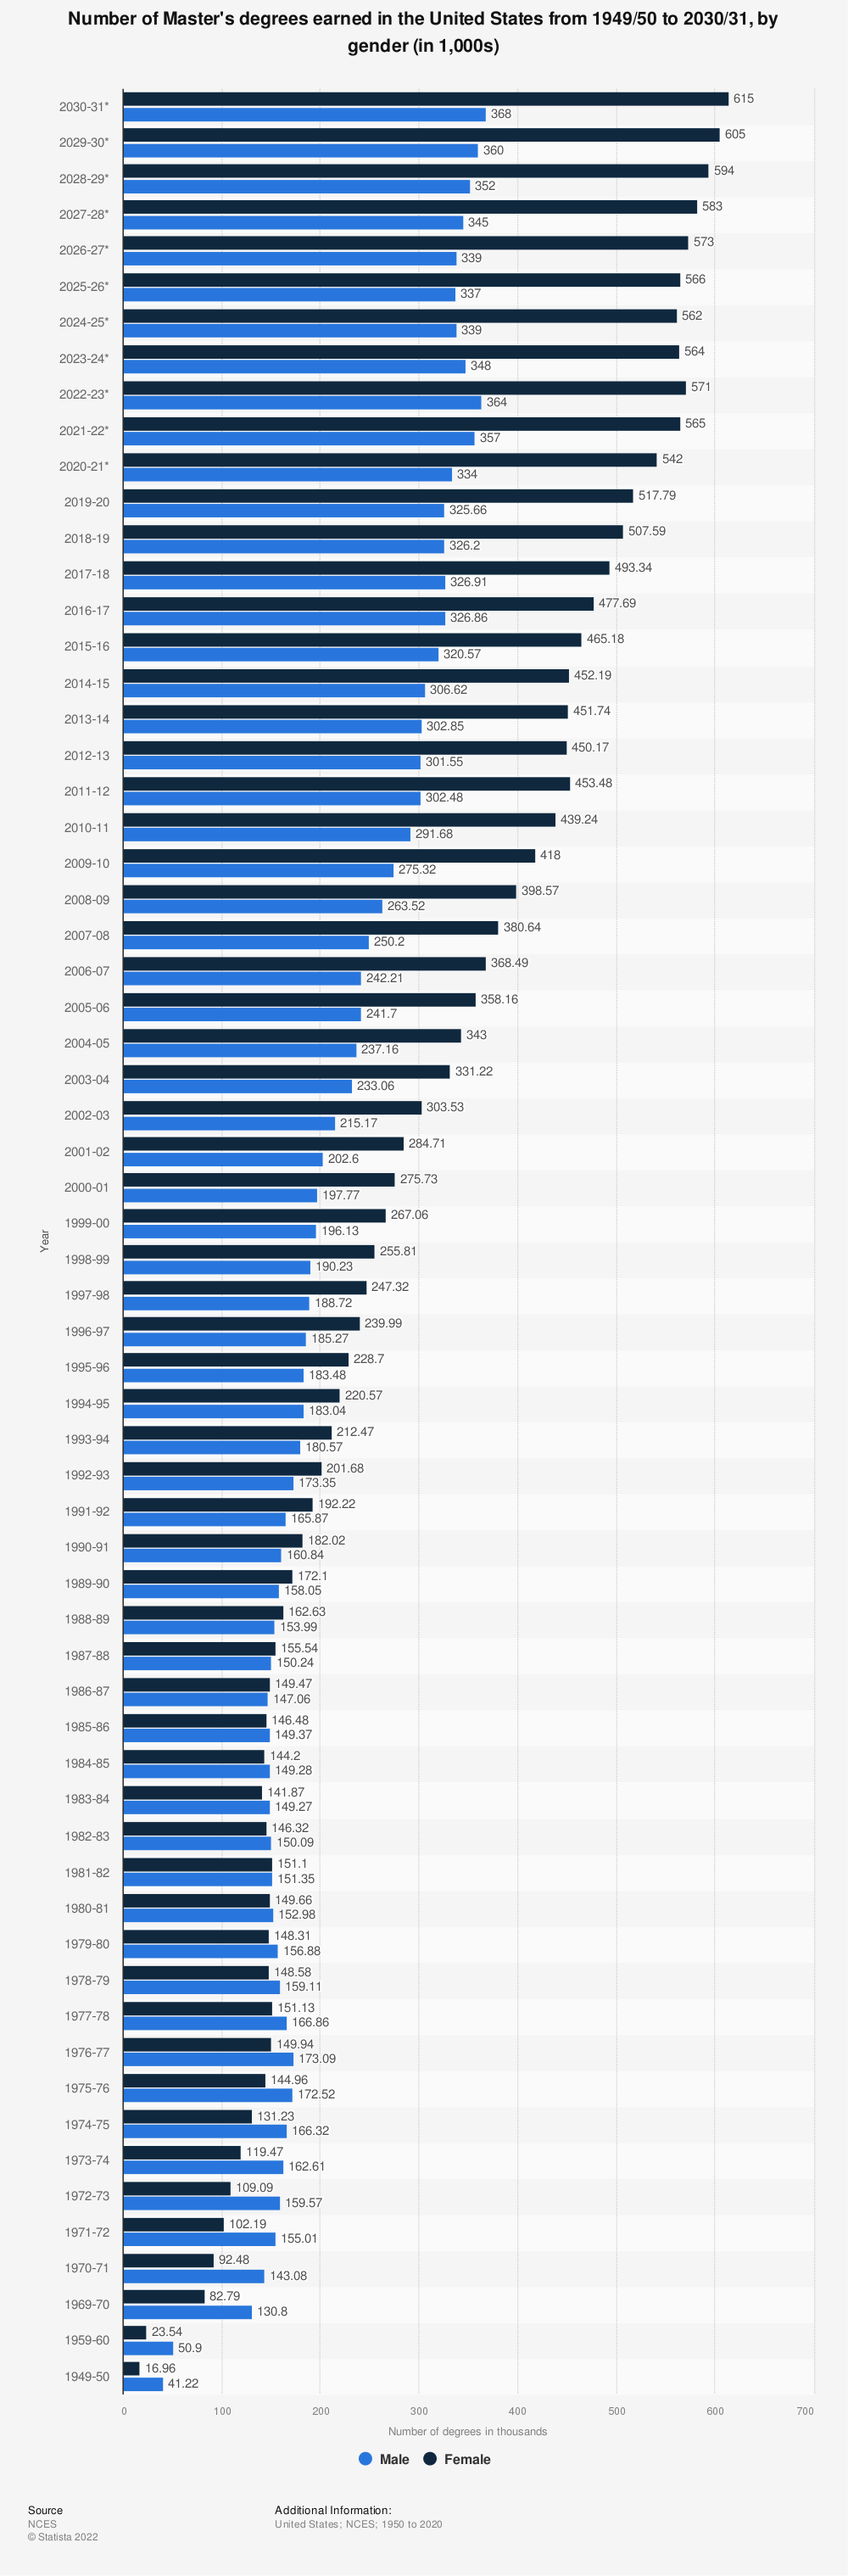 Statistic: Number of master's degrees earned in the United States from 1949/50 to 2027/28, by gender (in 1,000) | Statista